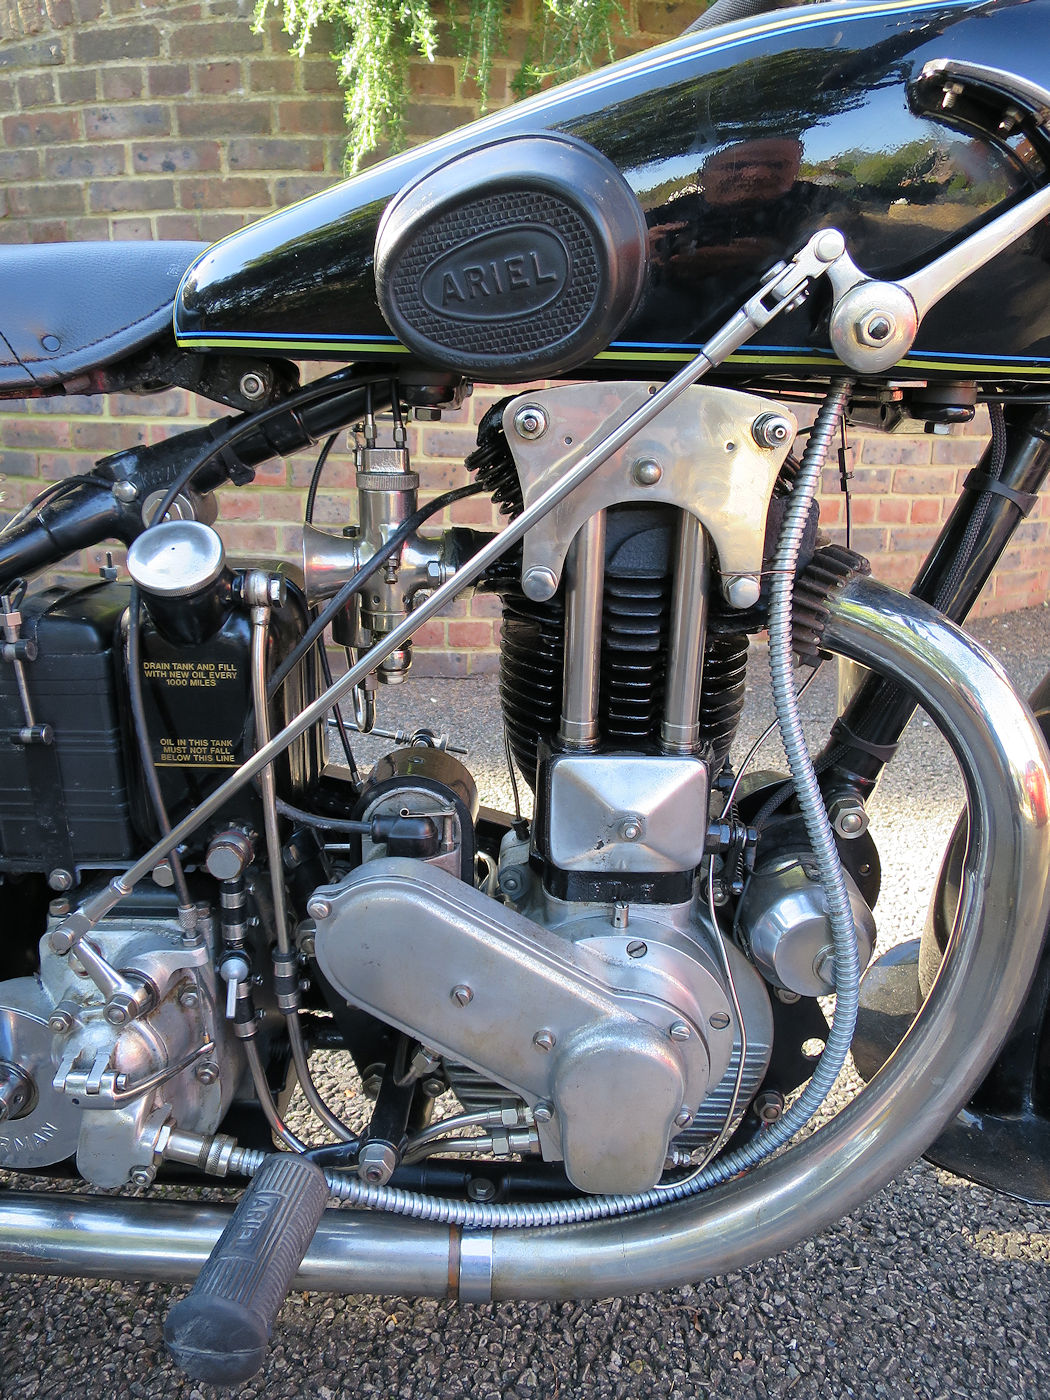 1930 Model F For Sale - Ariel Owners Motorcycle Club